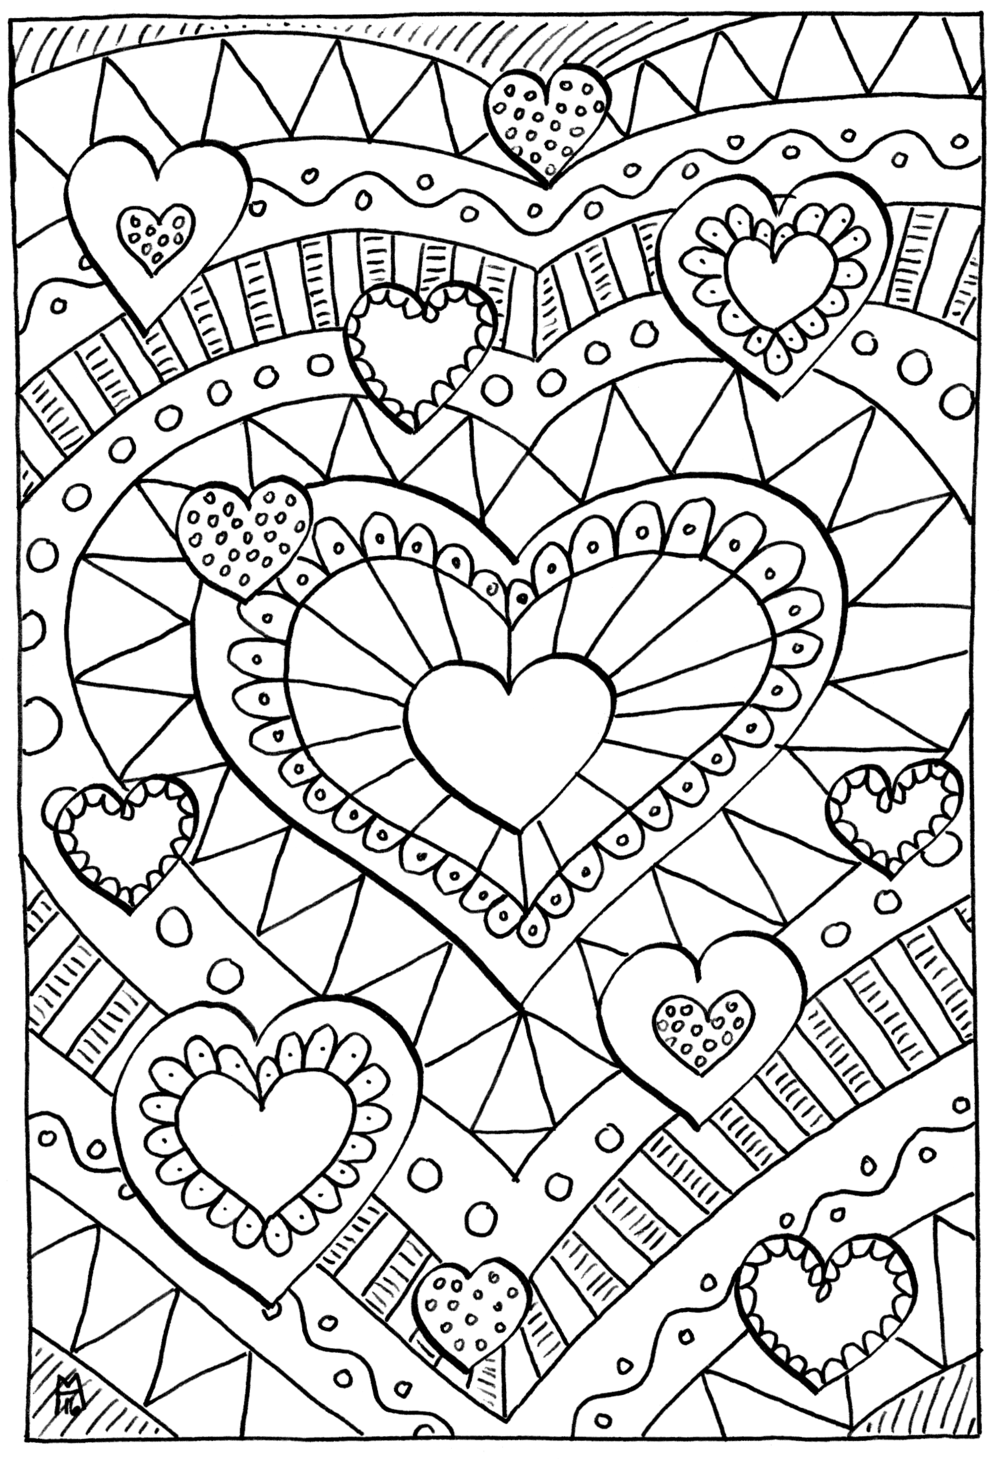 dltks free coloring pages - photo#37